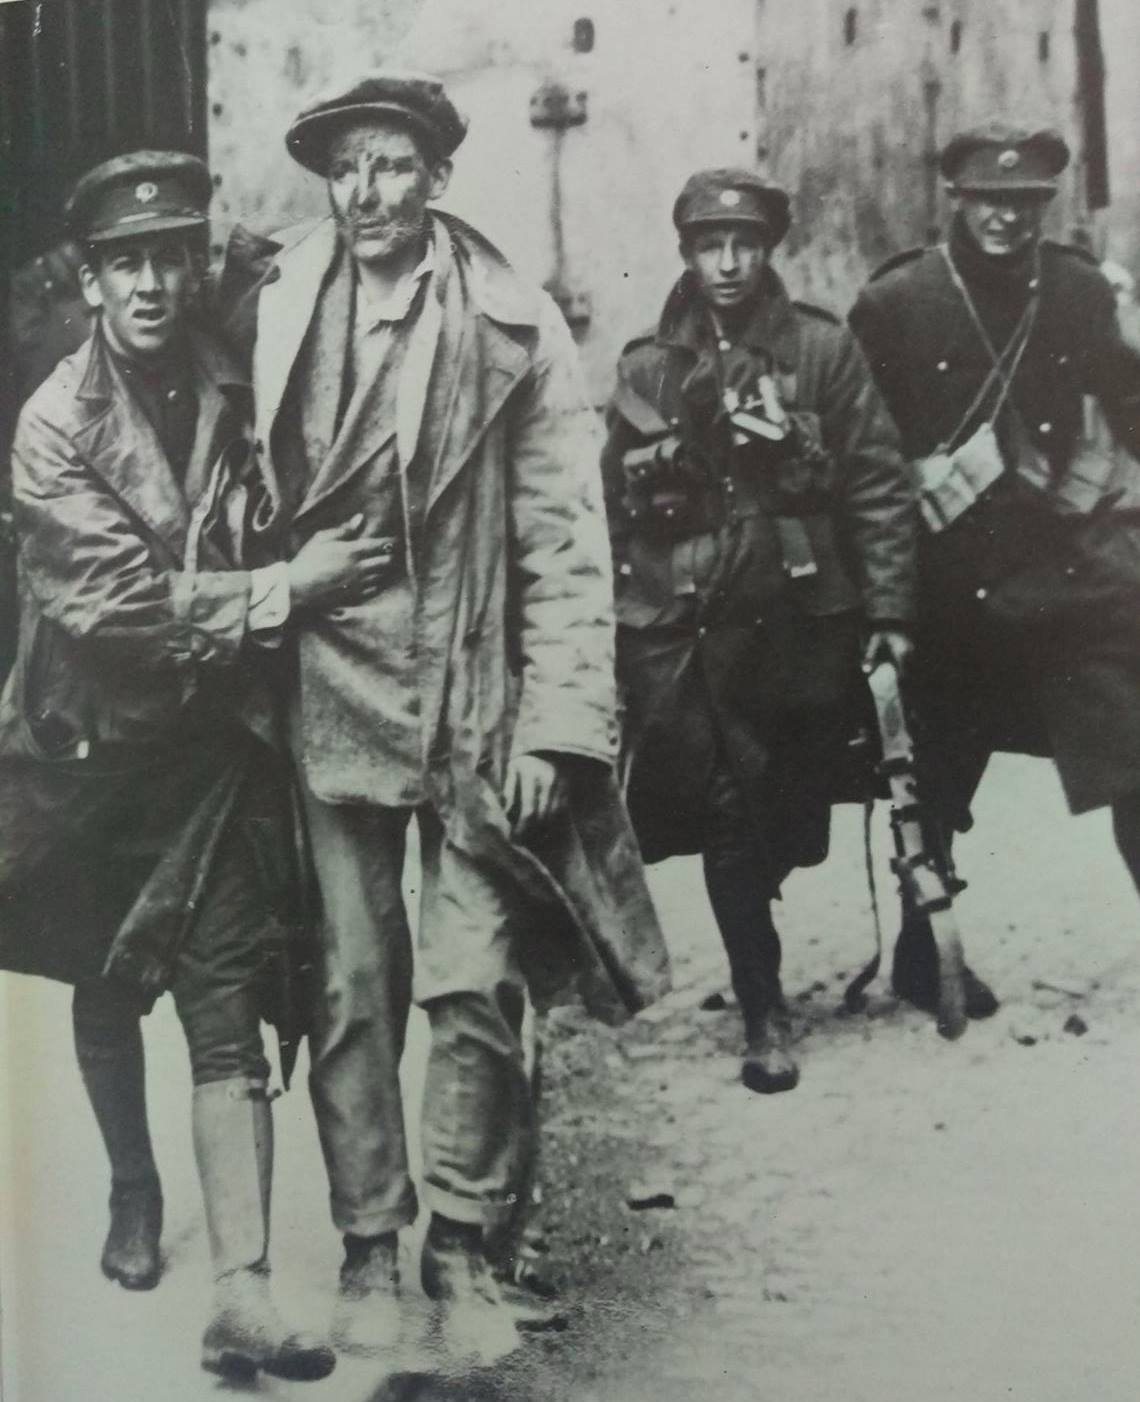 Joe being led away wounded from the Four Courts in 1922.